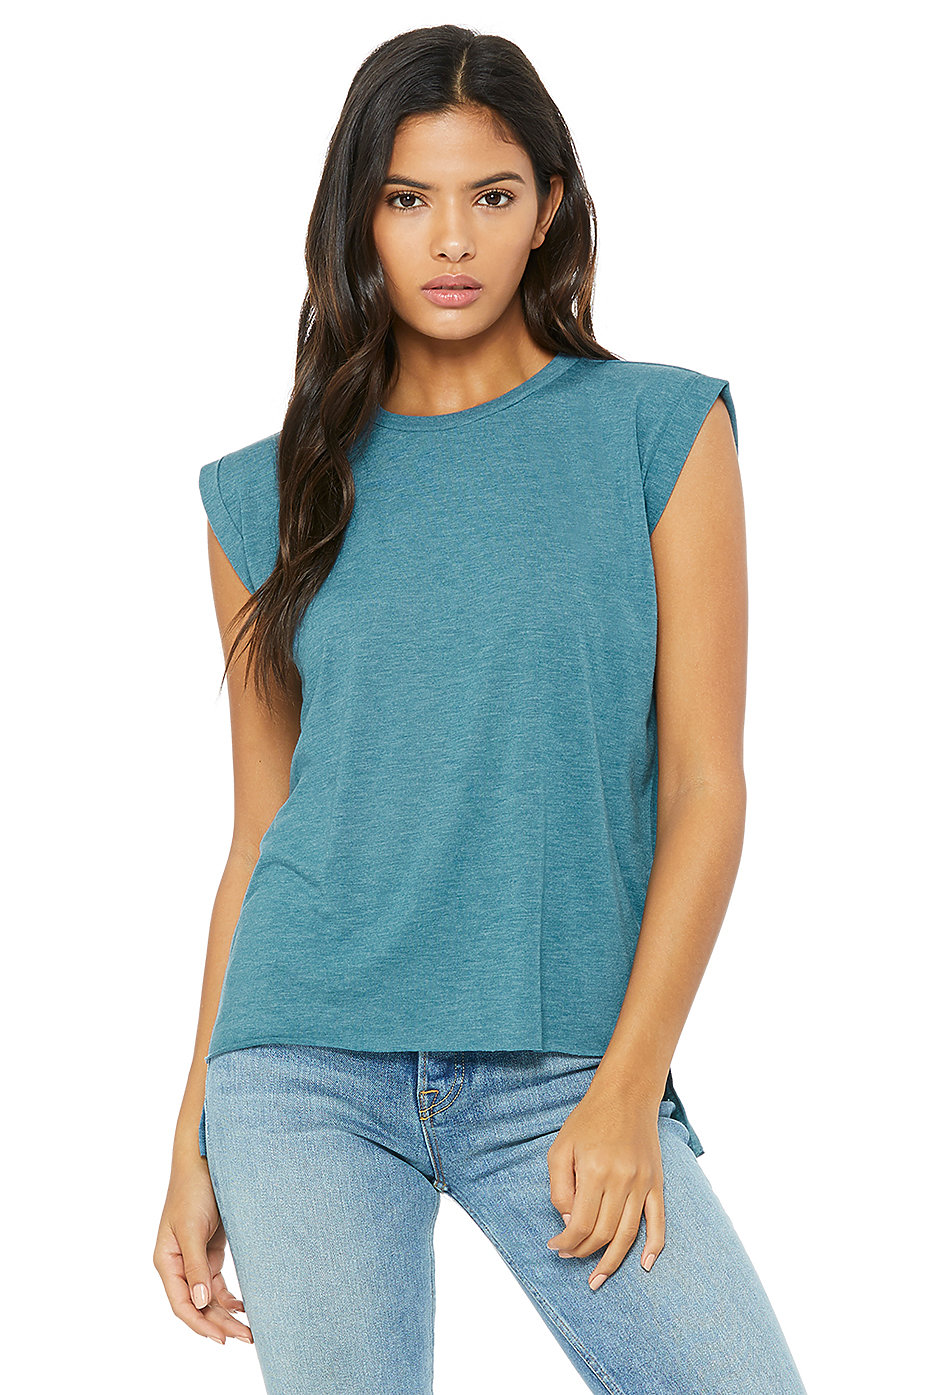 women u0026 39 s flowy muscle tee with rolled cuff